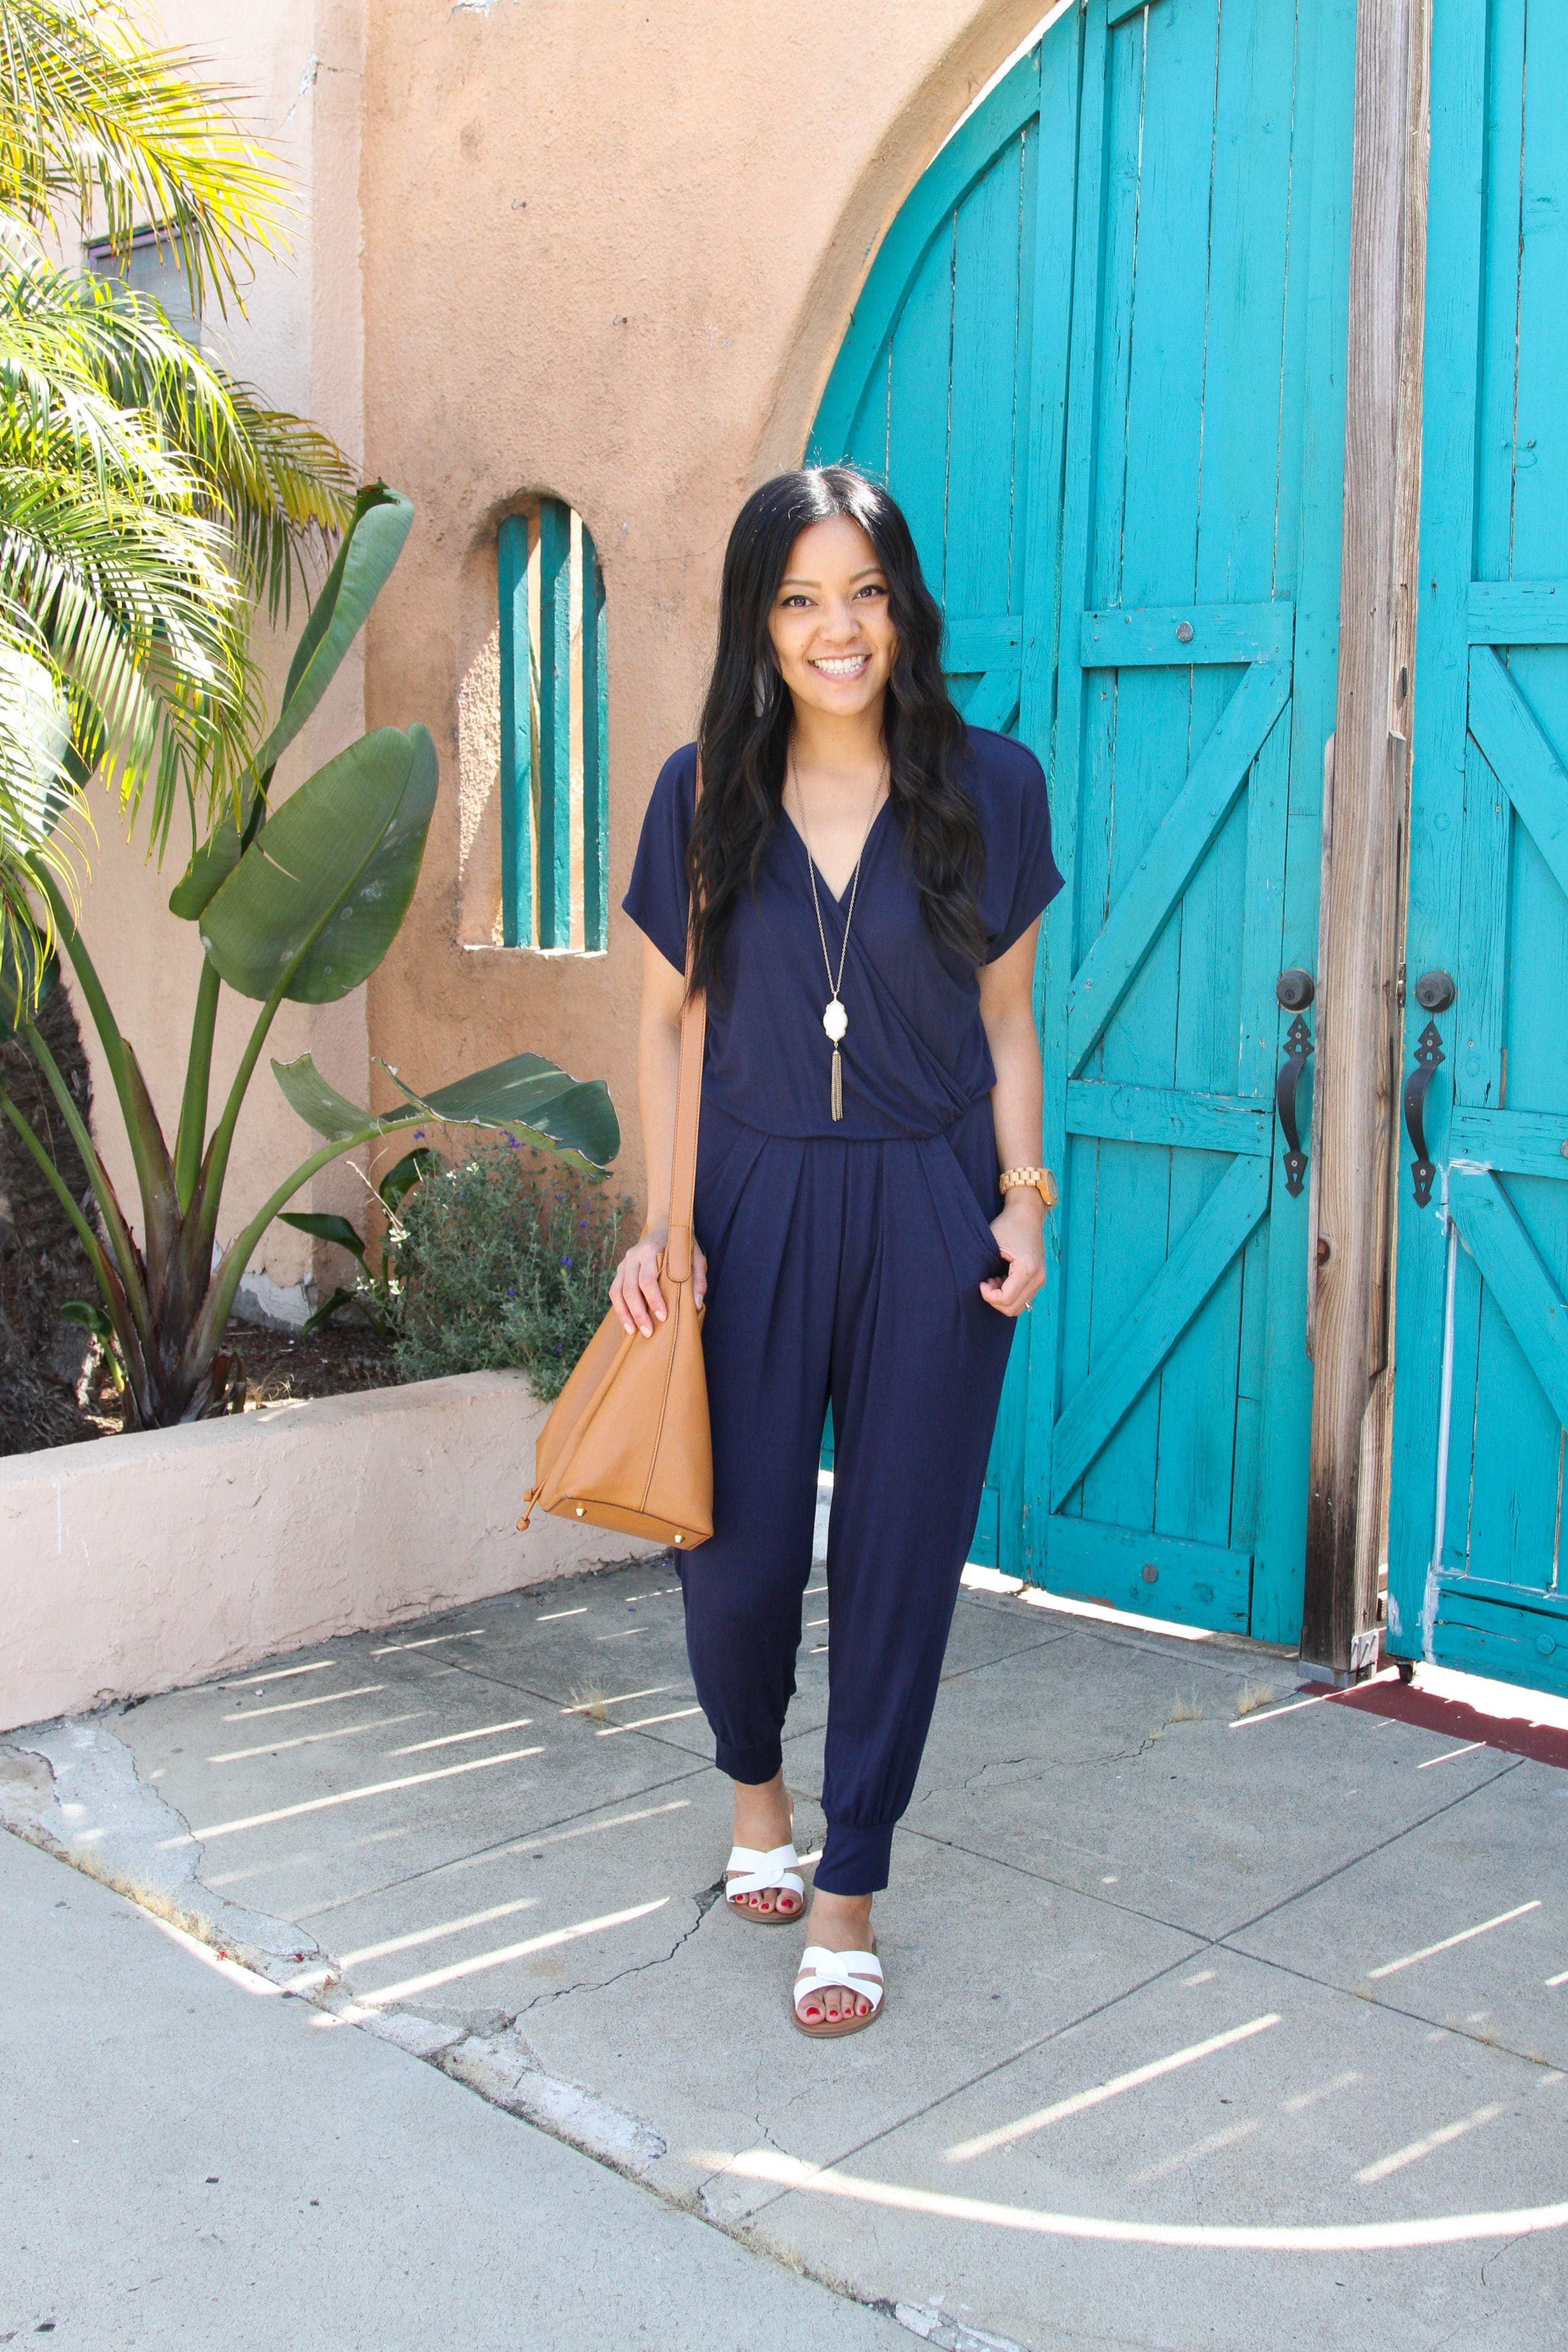 Navy jumpsuit + white sandals + cognac tote + pendant necklace